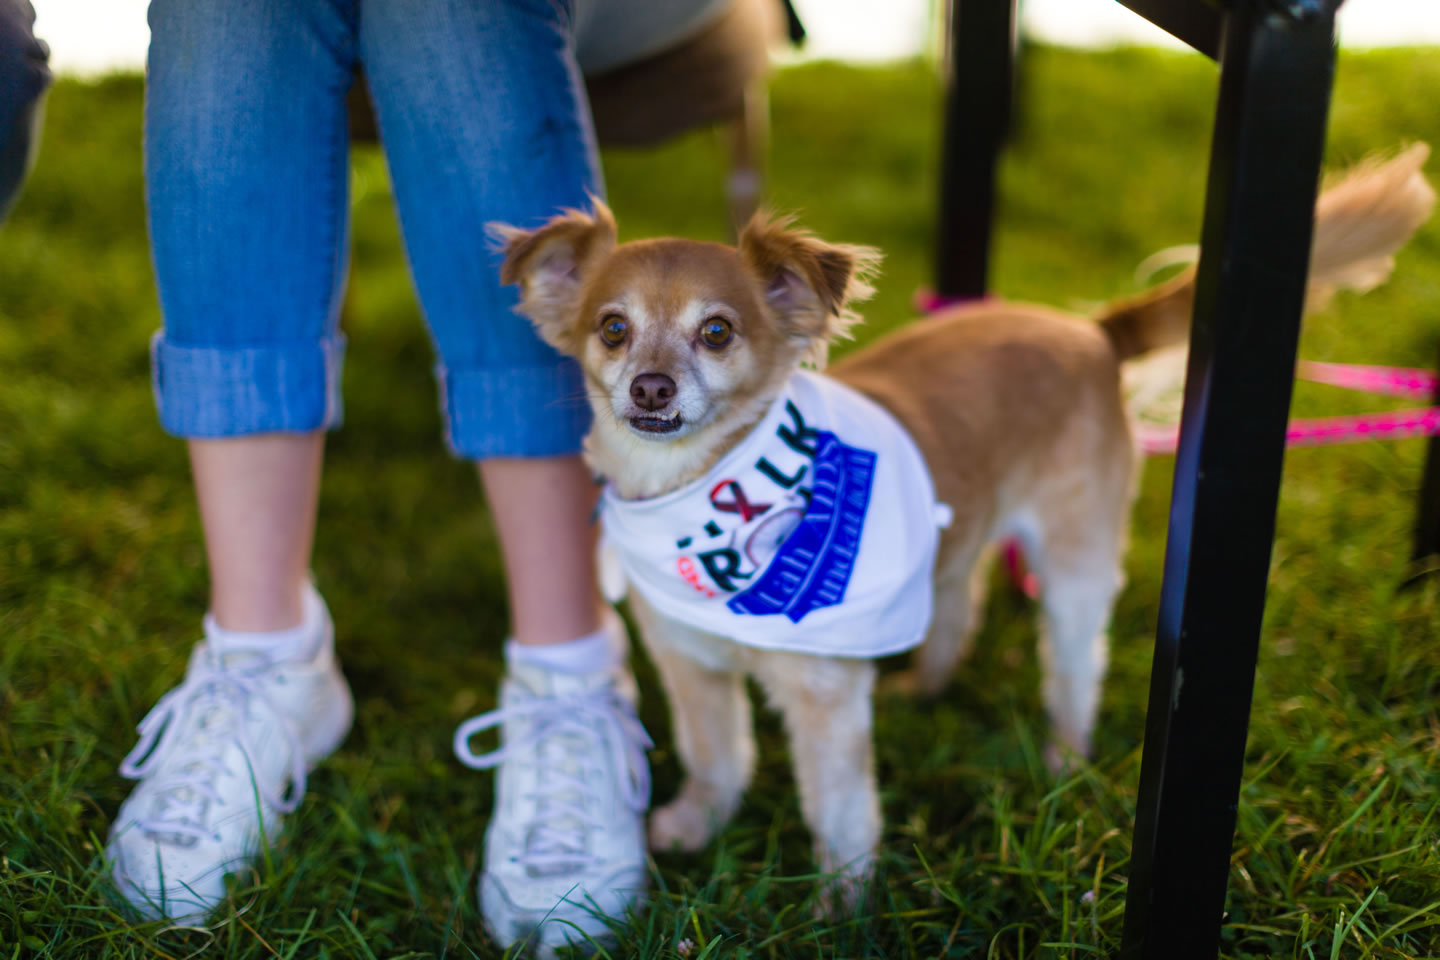 Dogs are encouraged for the Walk for Life